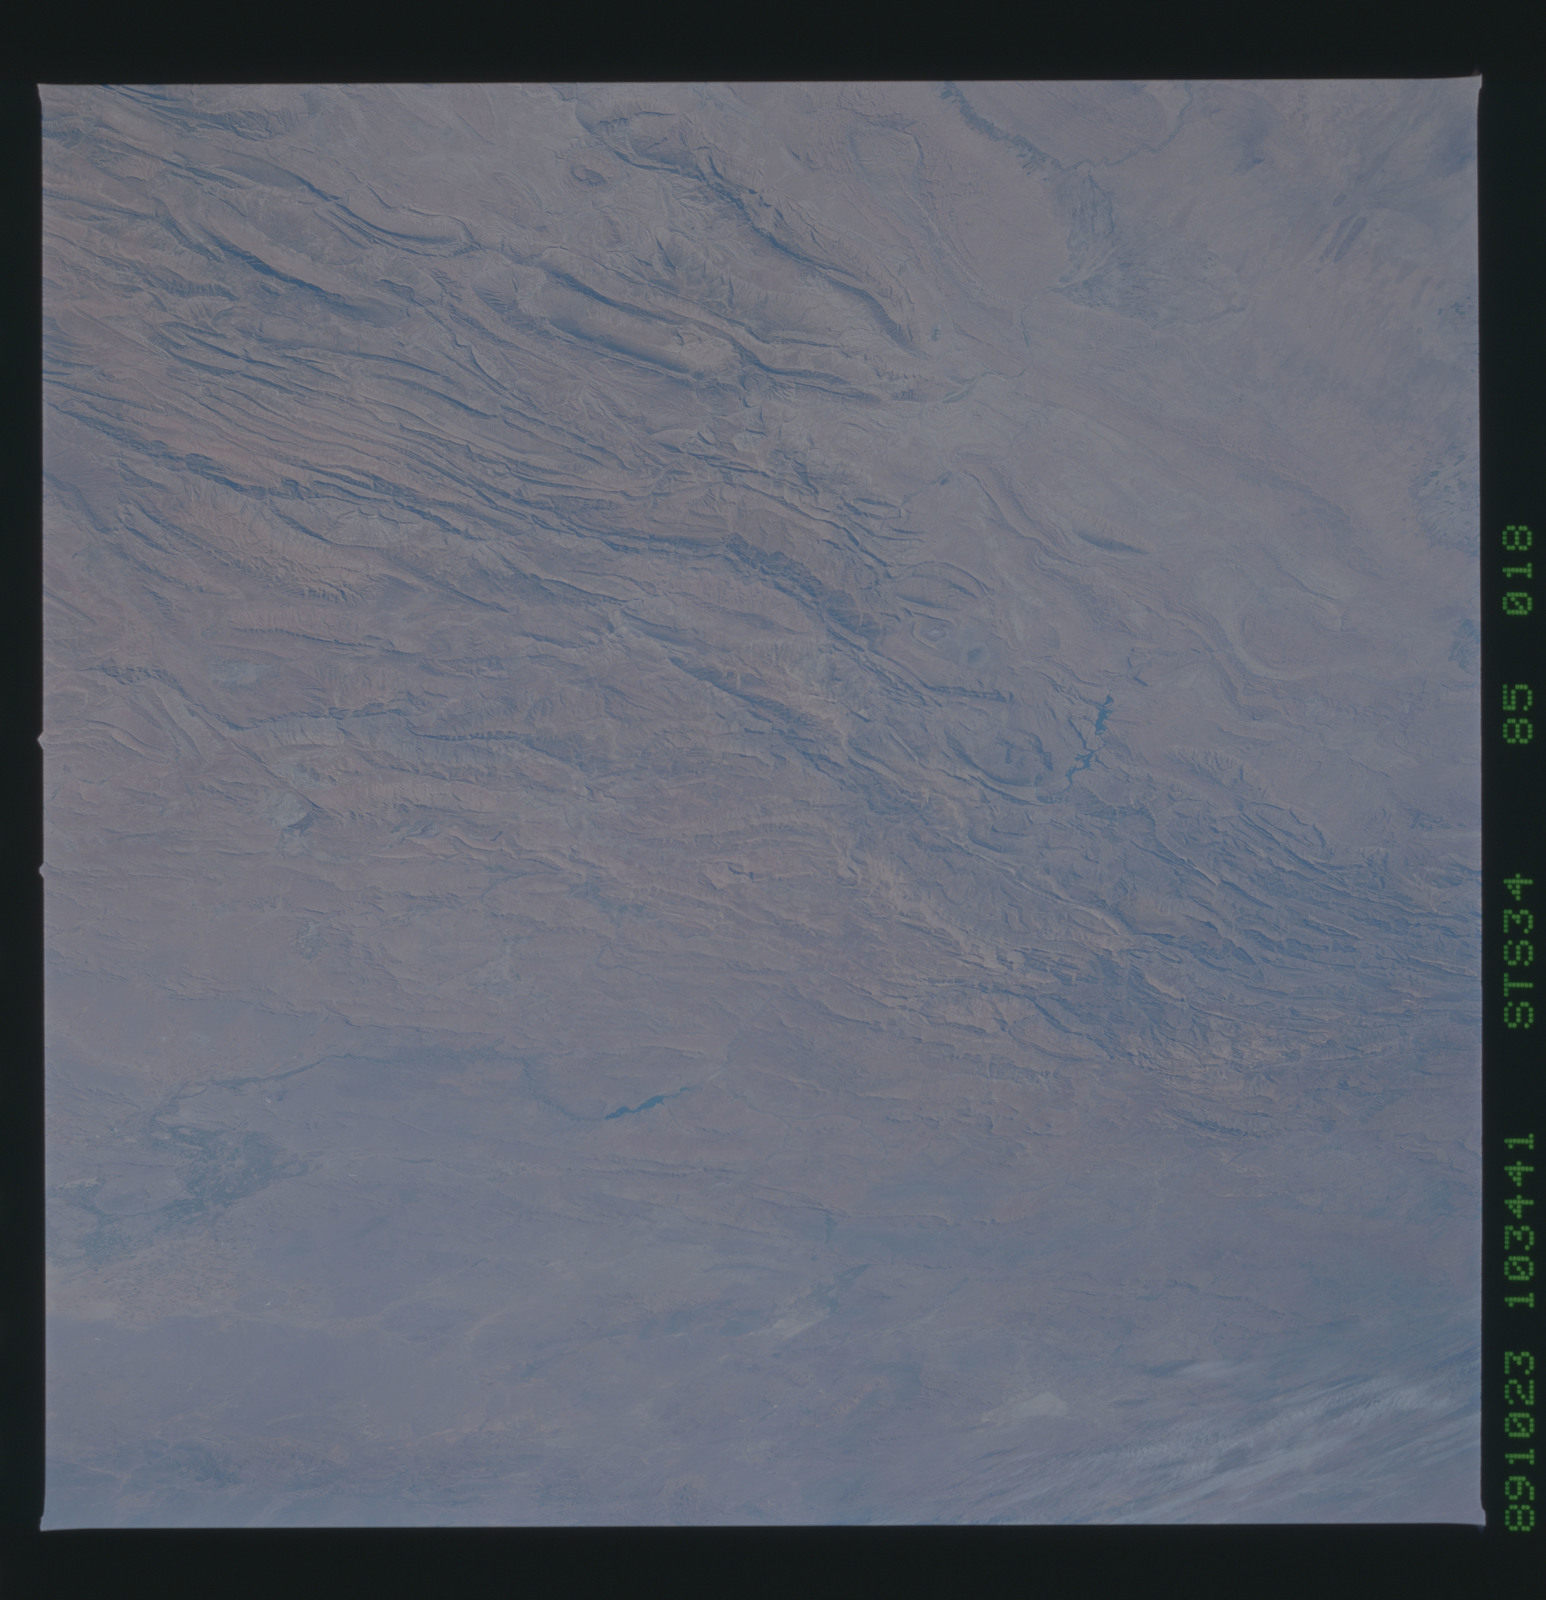 S34-85-018 - STS-034 - STS-34 earth observations